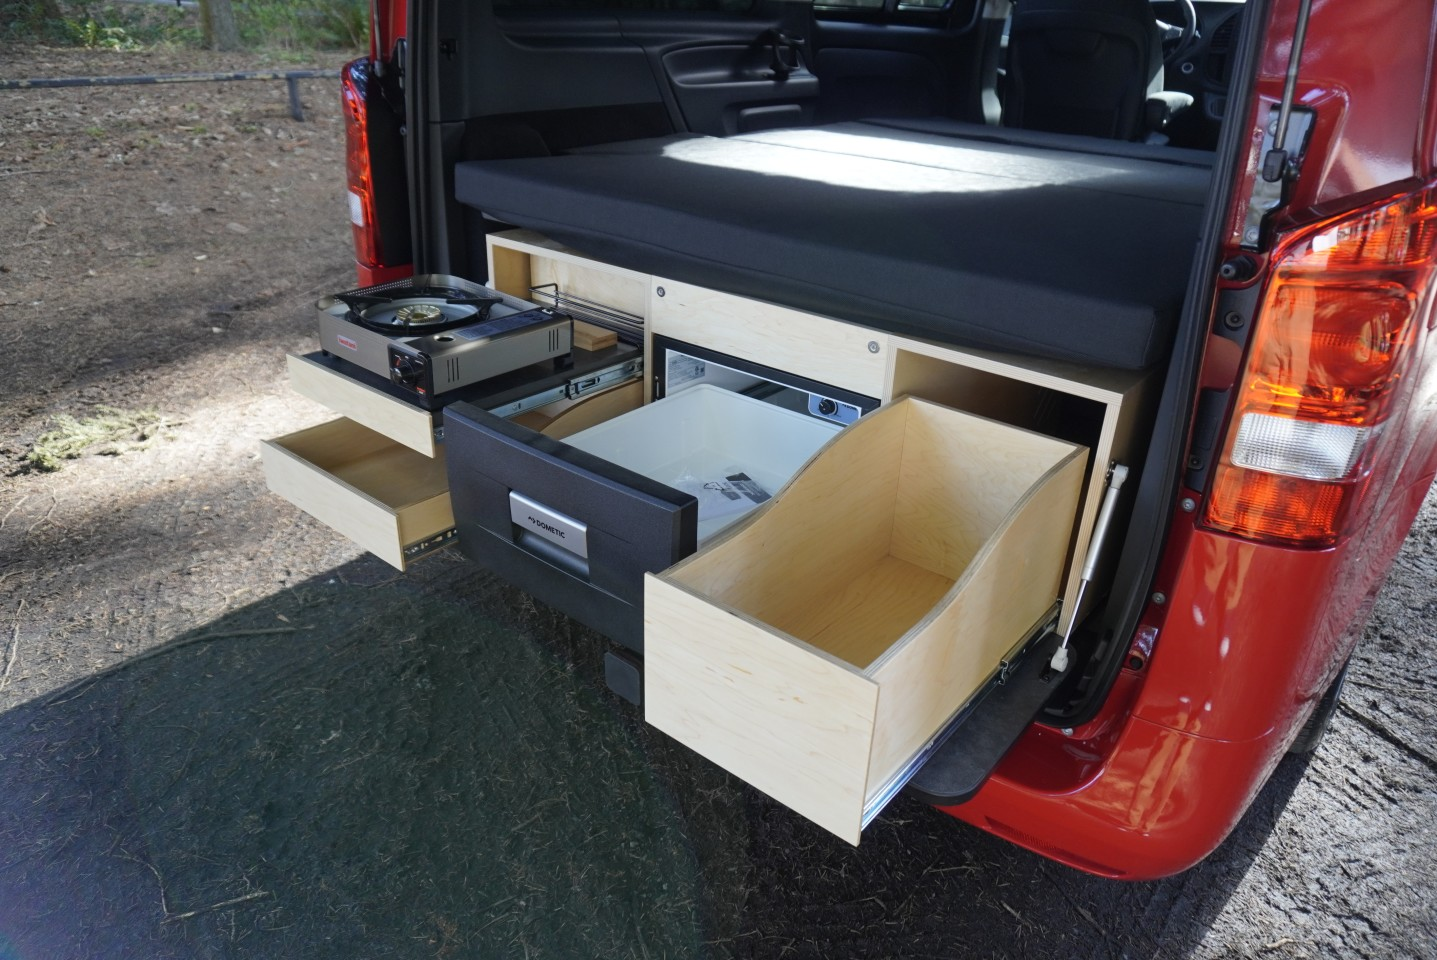 The compact kitchen doesn't have a sink, but Caravan Outfitter offers an optional swing-out indoor/outdoor sink unit in front of the rear bench